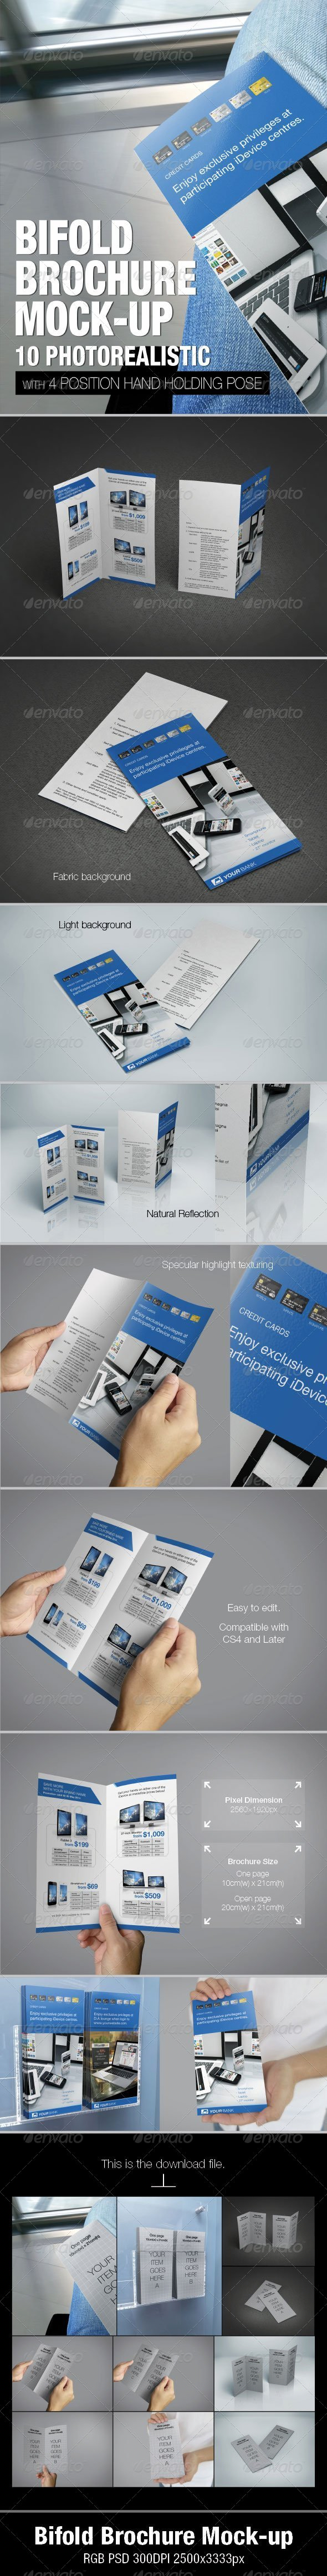 Bifold Brochure Mock-up - Brochures Print